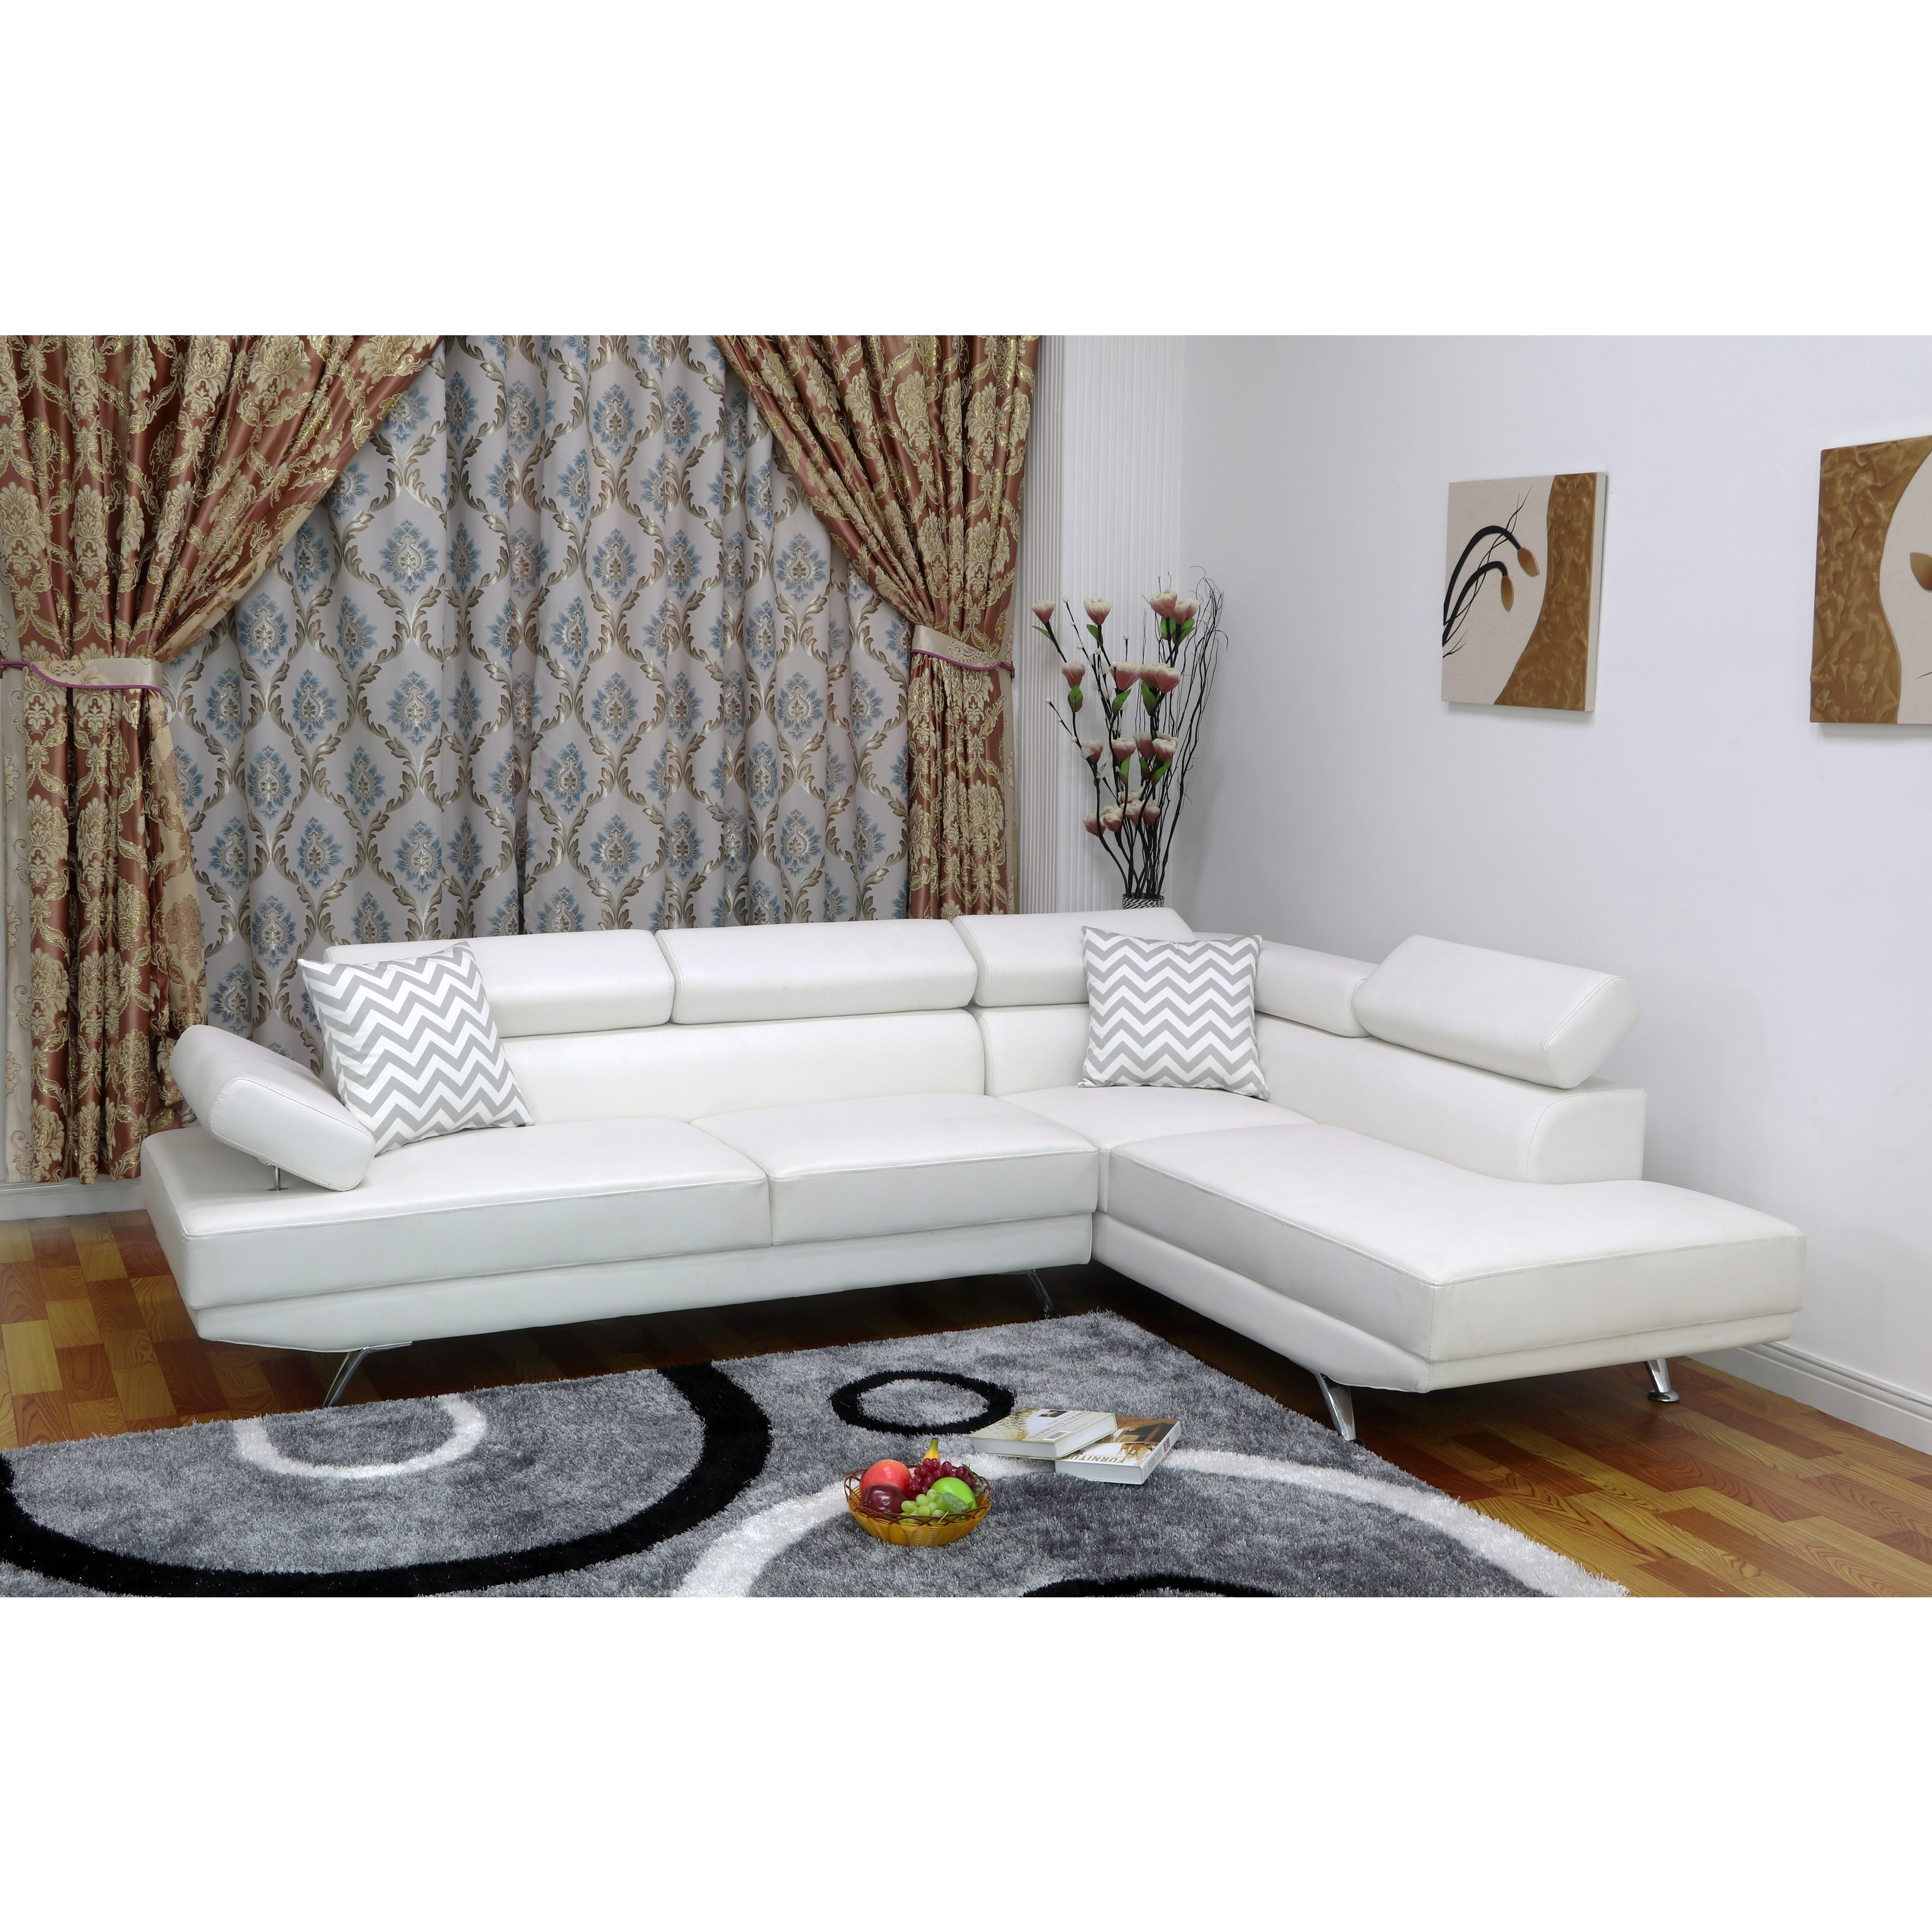 Pdae Whitley Modern Faux Leather Right Facing Chaise Sectional Sofa